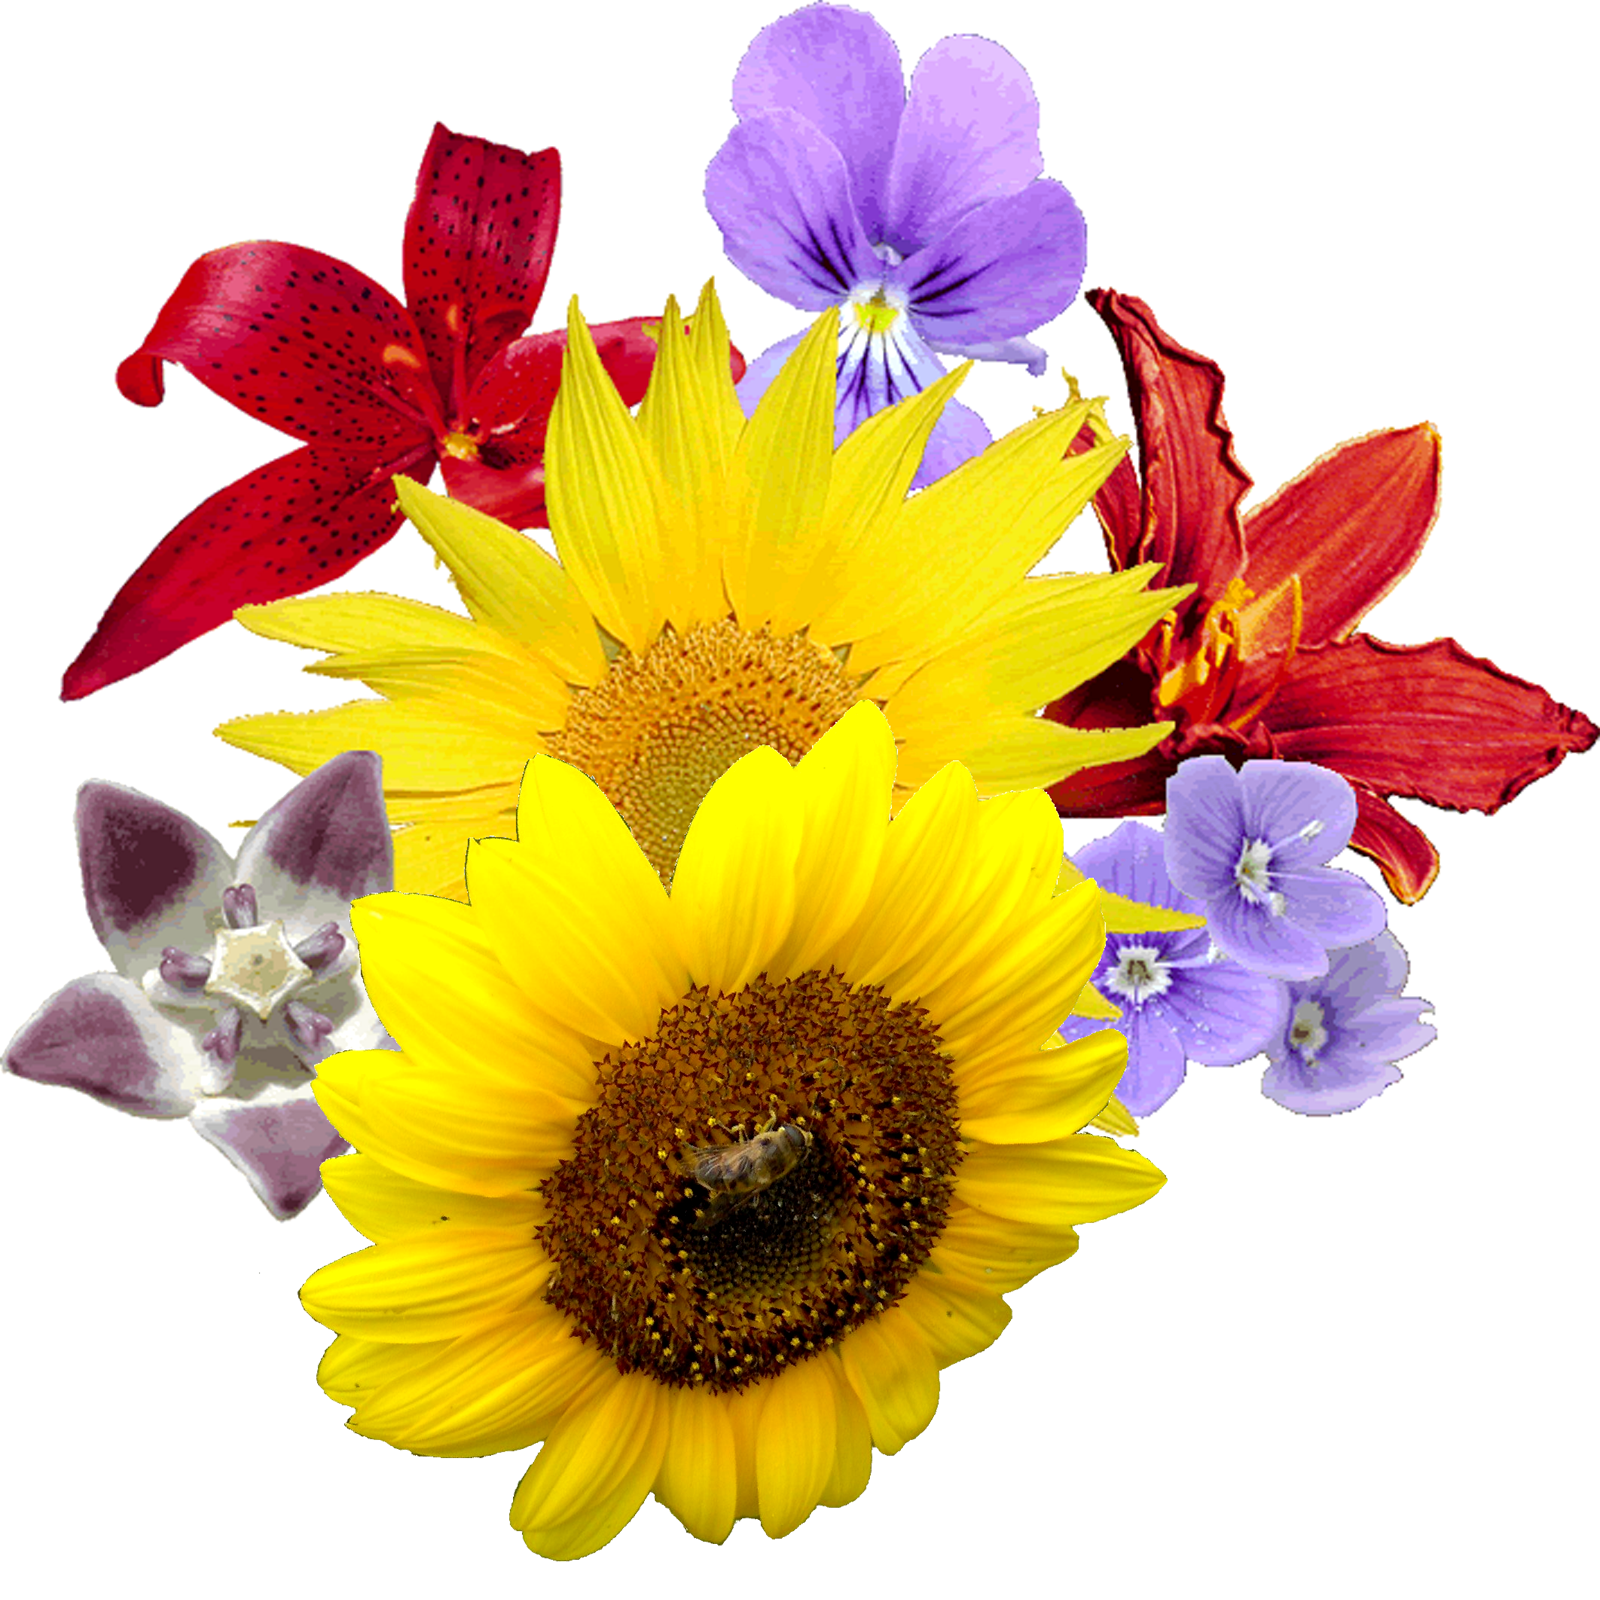 Flowers png images. Flower clipart transparent free